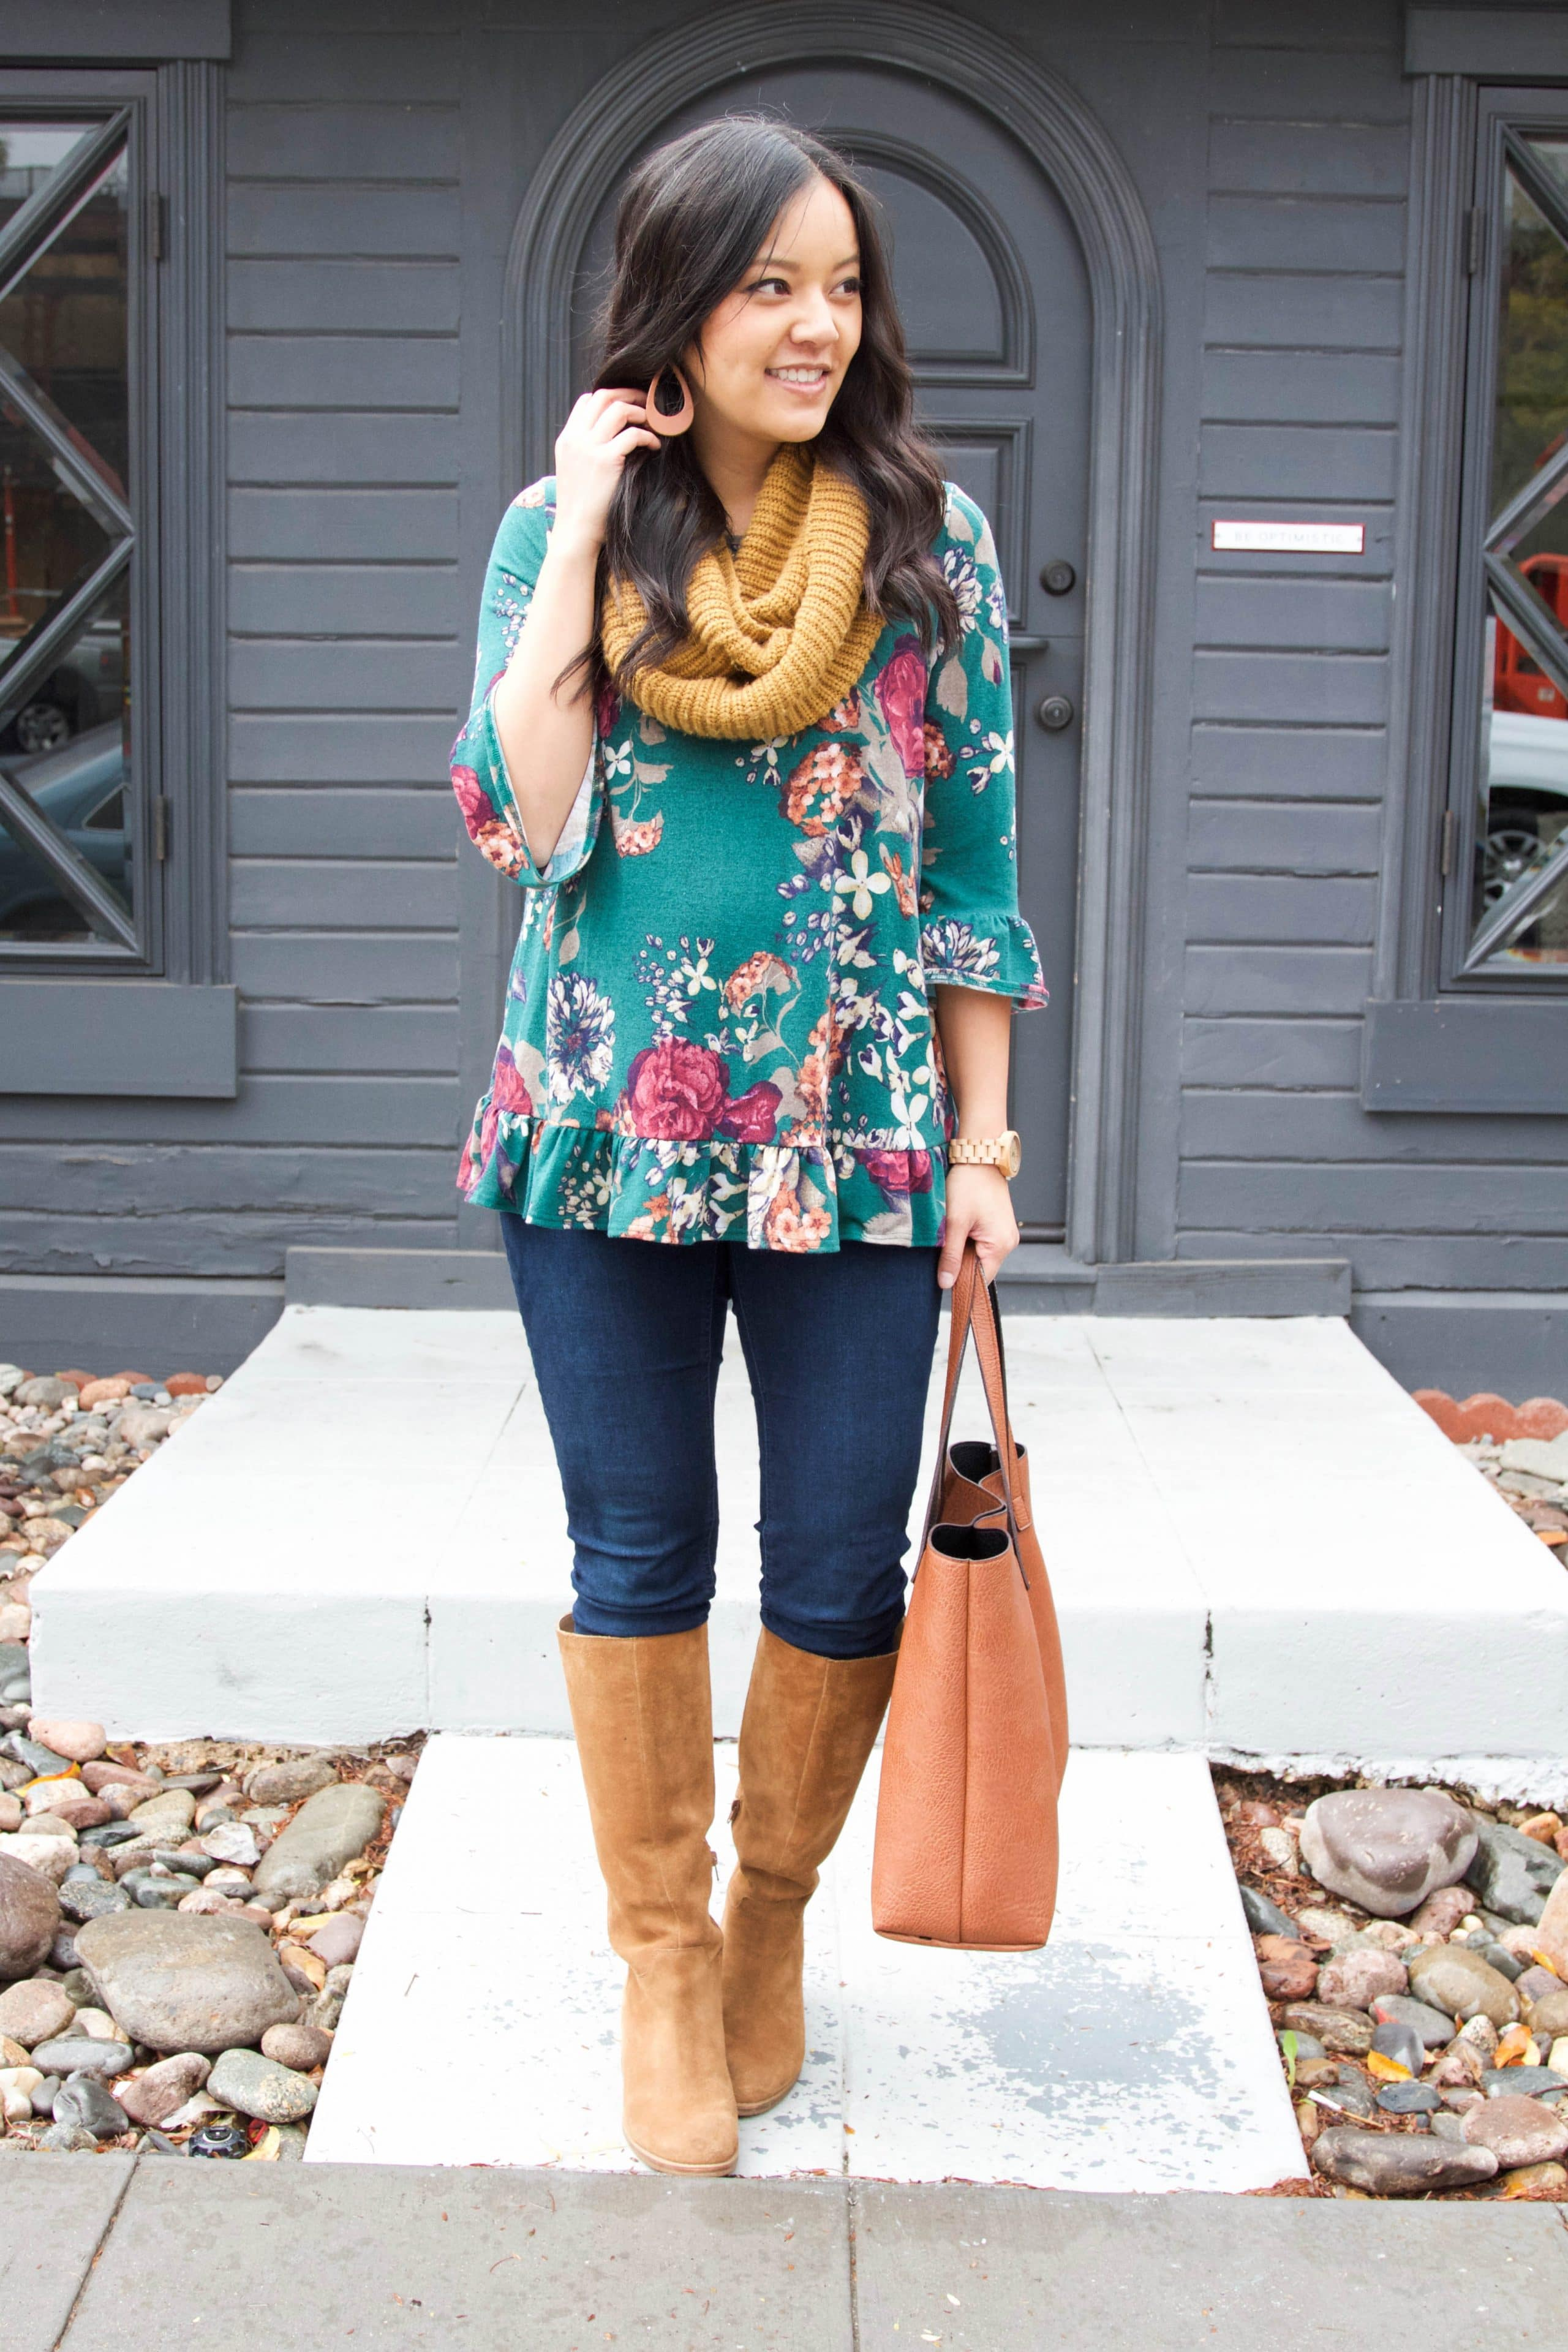 Infinity Scarf + Floral Top + Boots + Tote + Dark Skinnies